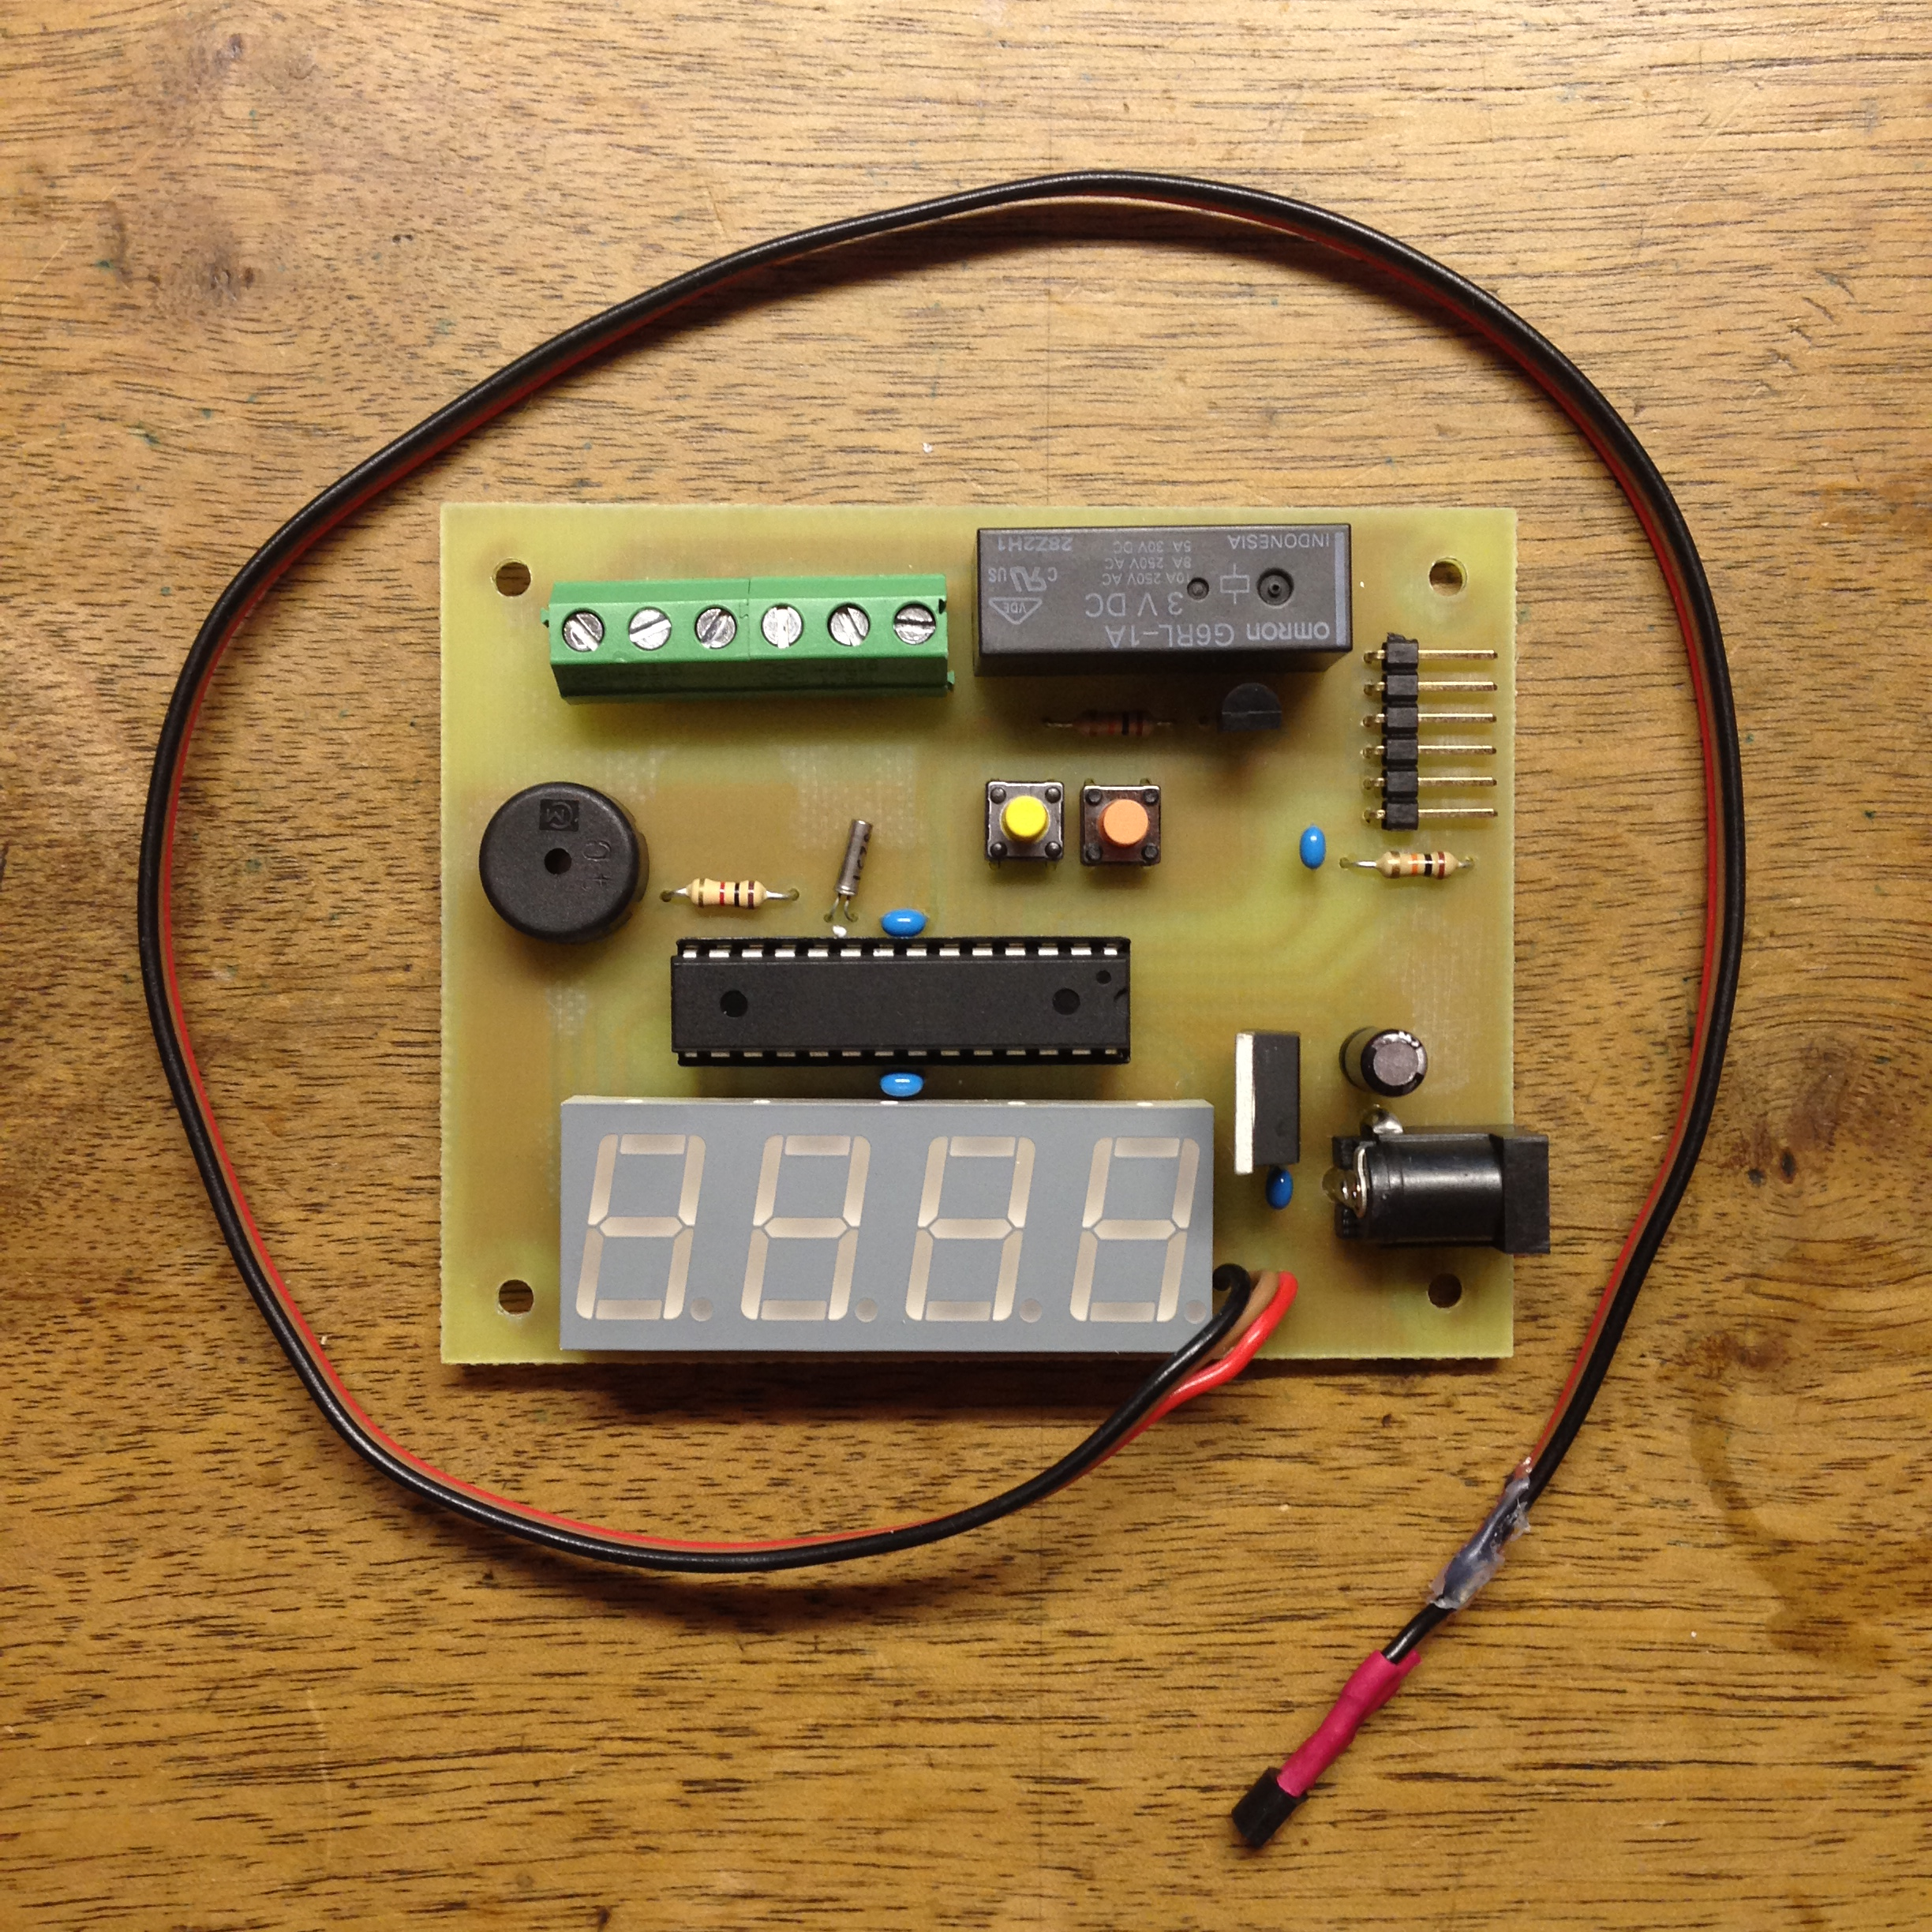 Diy Incubator Biodesign For The Real World Hot Water Heater Thermostat Wiring 2013 12 25 115615